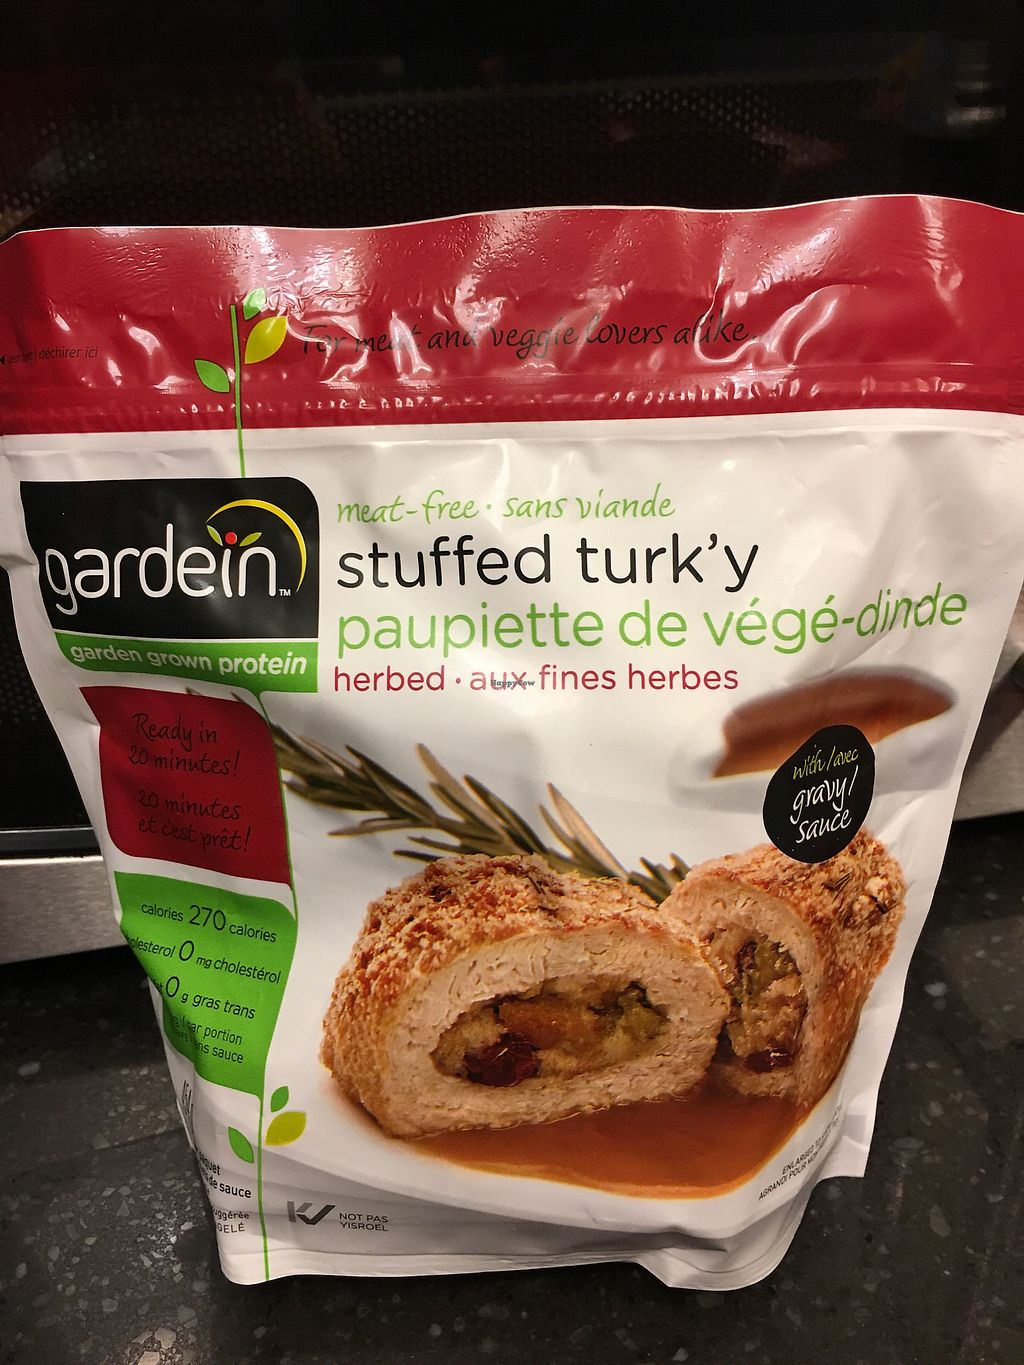 """Photo of Vegan Supply  by <a href=""""/members/profile/Siup"""">Siup</a> <br/>Vegan turkey  <br/> December 6, 2017  - <a href='/contact/abuse/image/59337/332961'>Report</a>"""